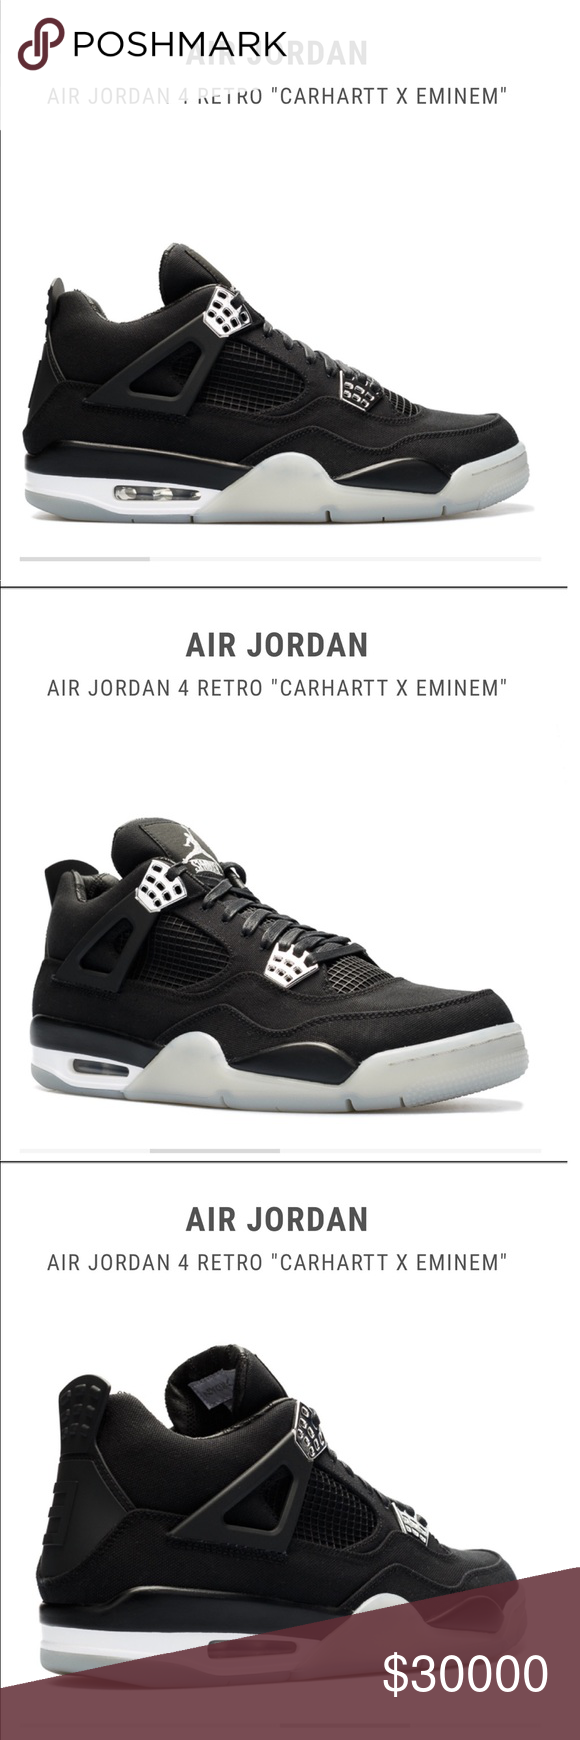 060585be6c0 Air jordan 4 retro carhartt x Eminem Very rare only have size 9 left out of  12 sizes Air Jordan Shoes Athletic Shoes